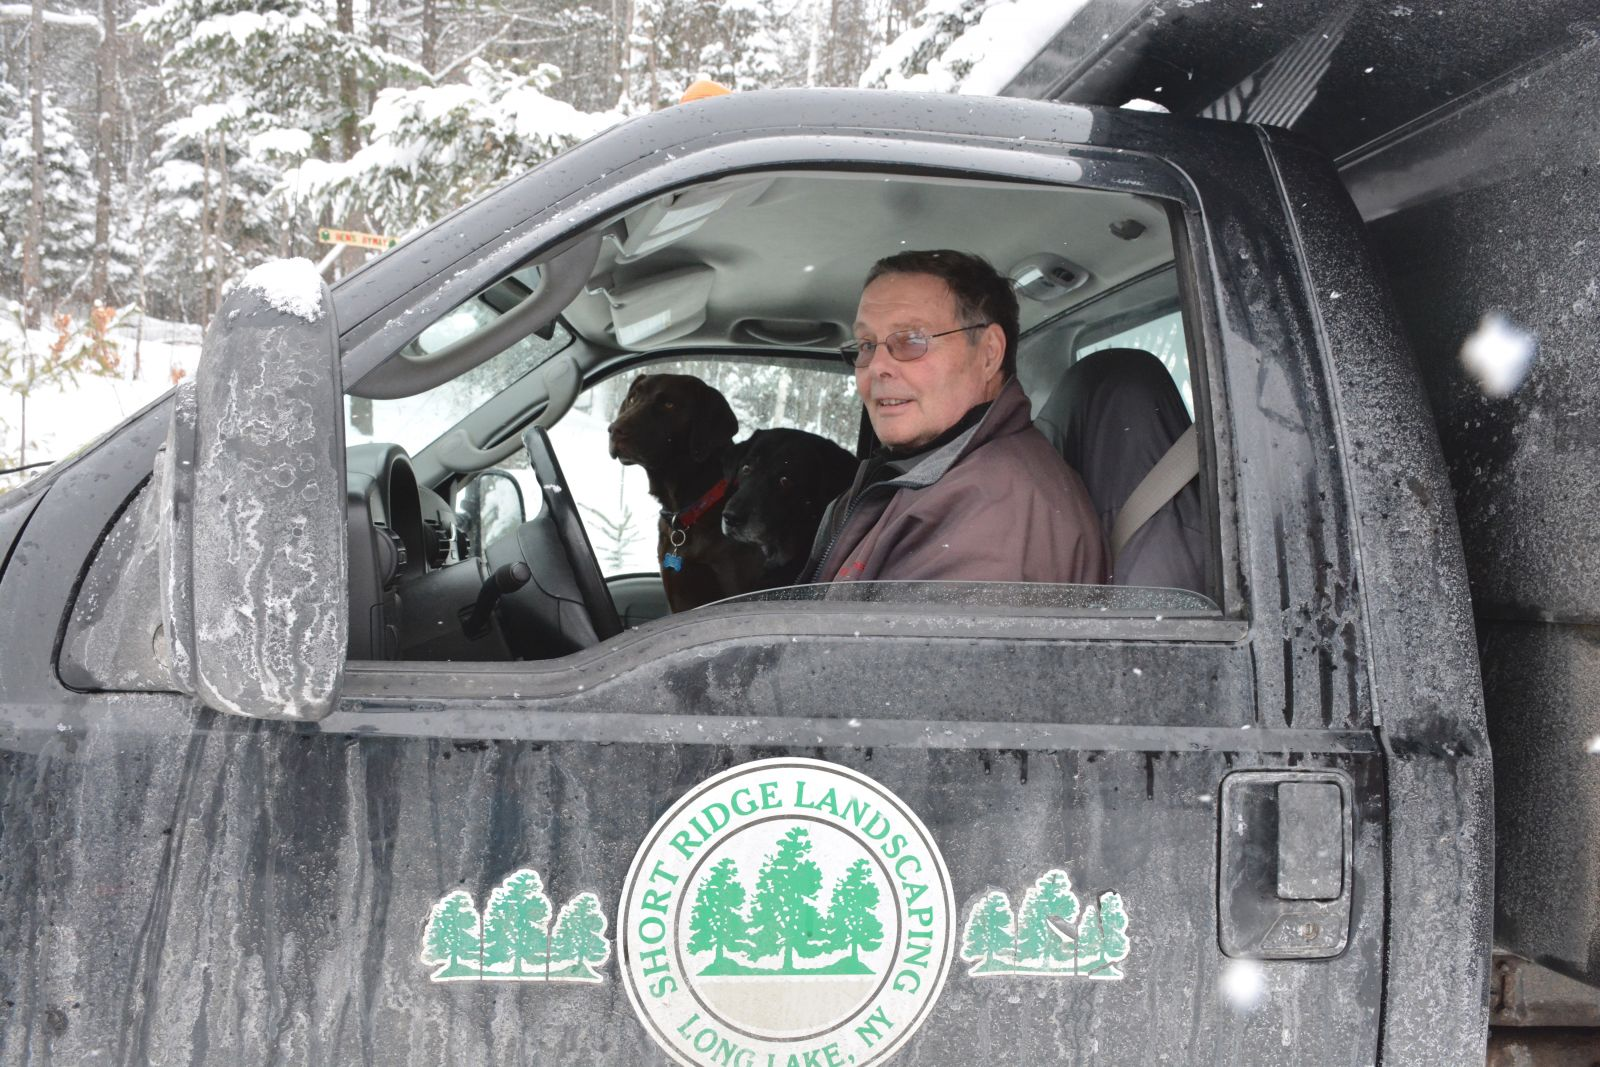 The plowing crew - Gilly, left, alongside his buddy, Misty, and my dad at the helm.